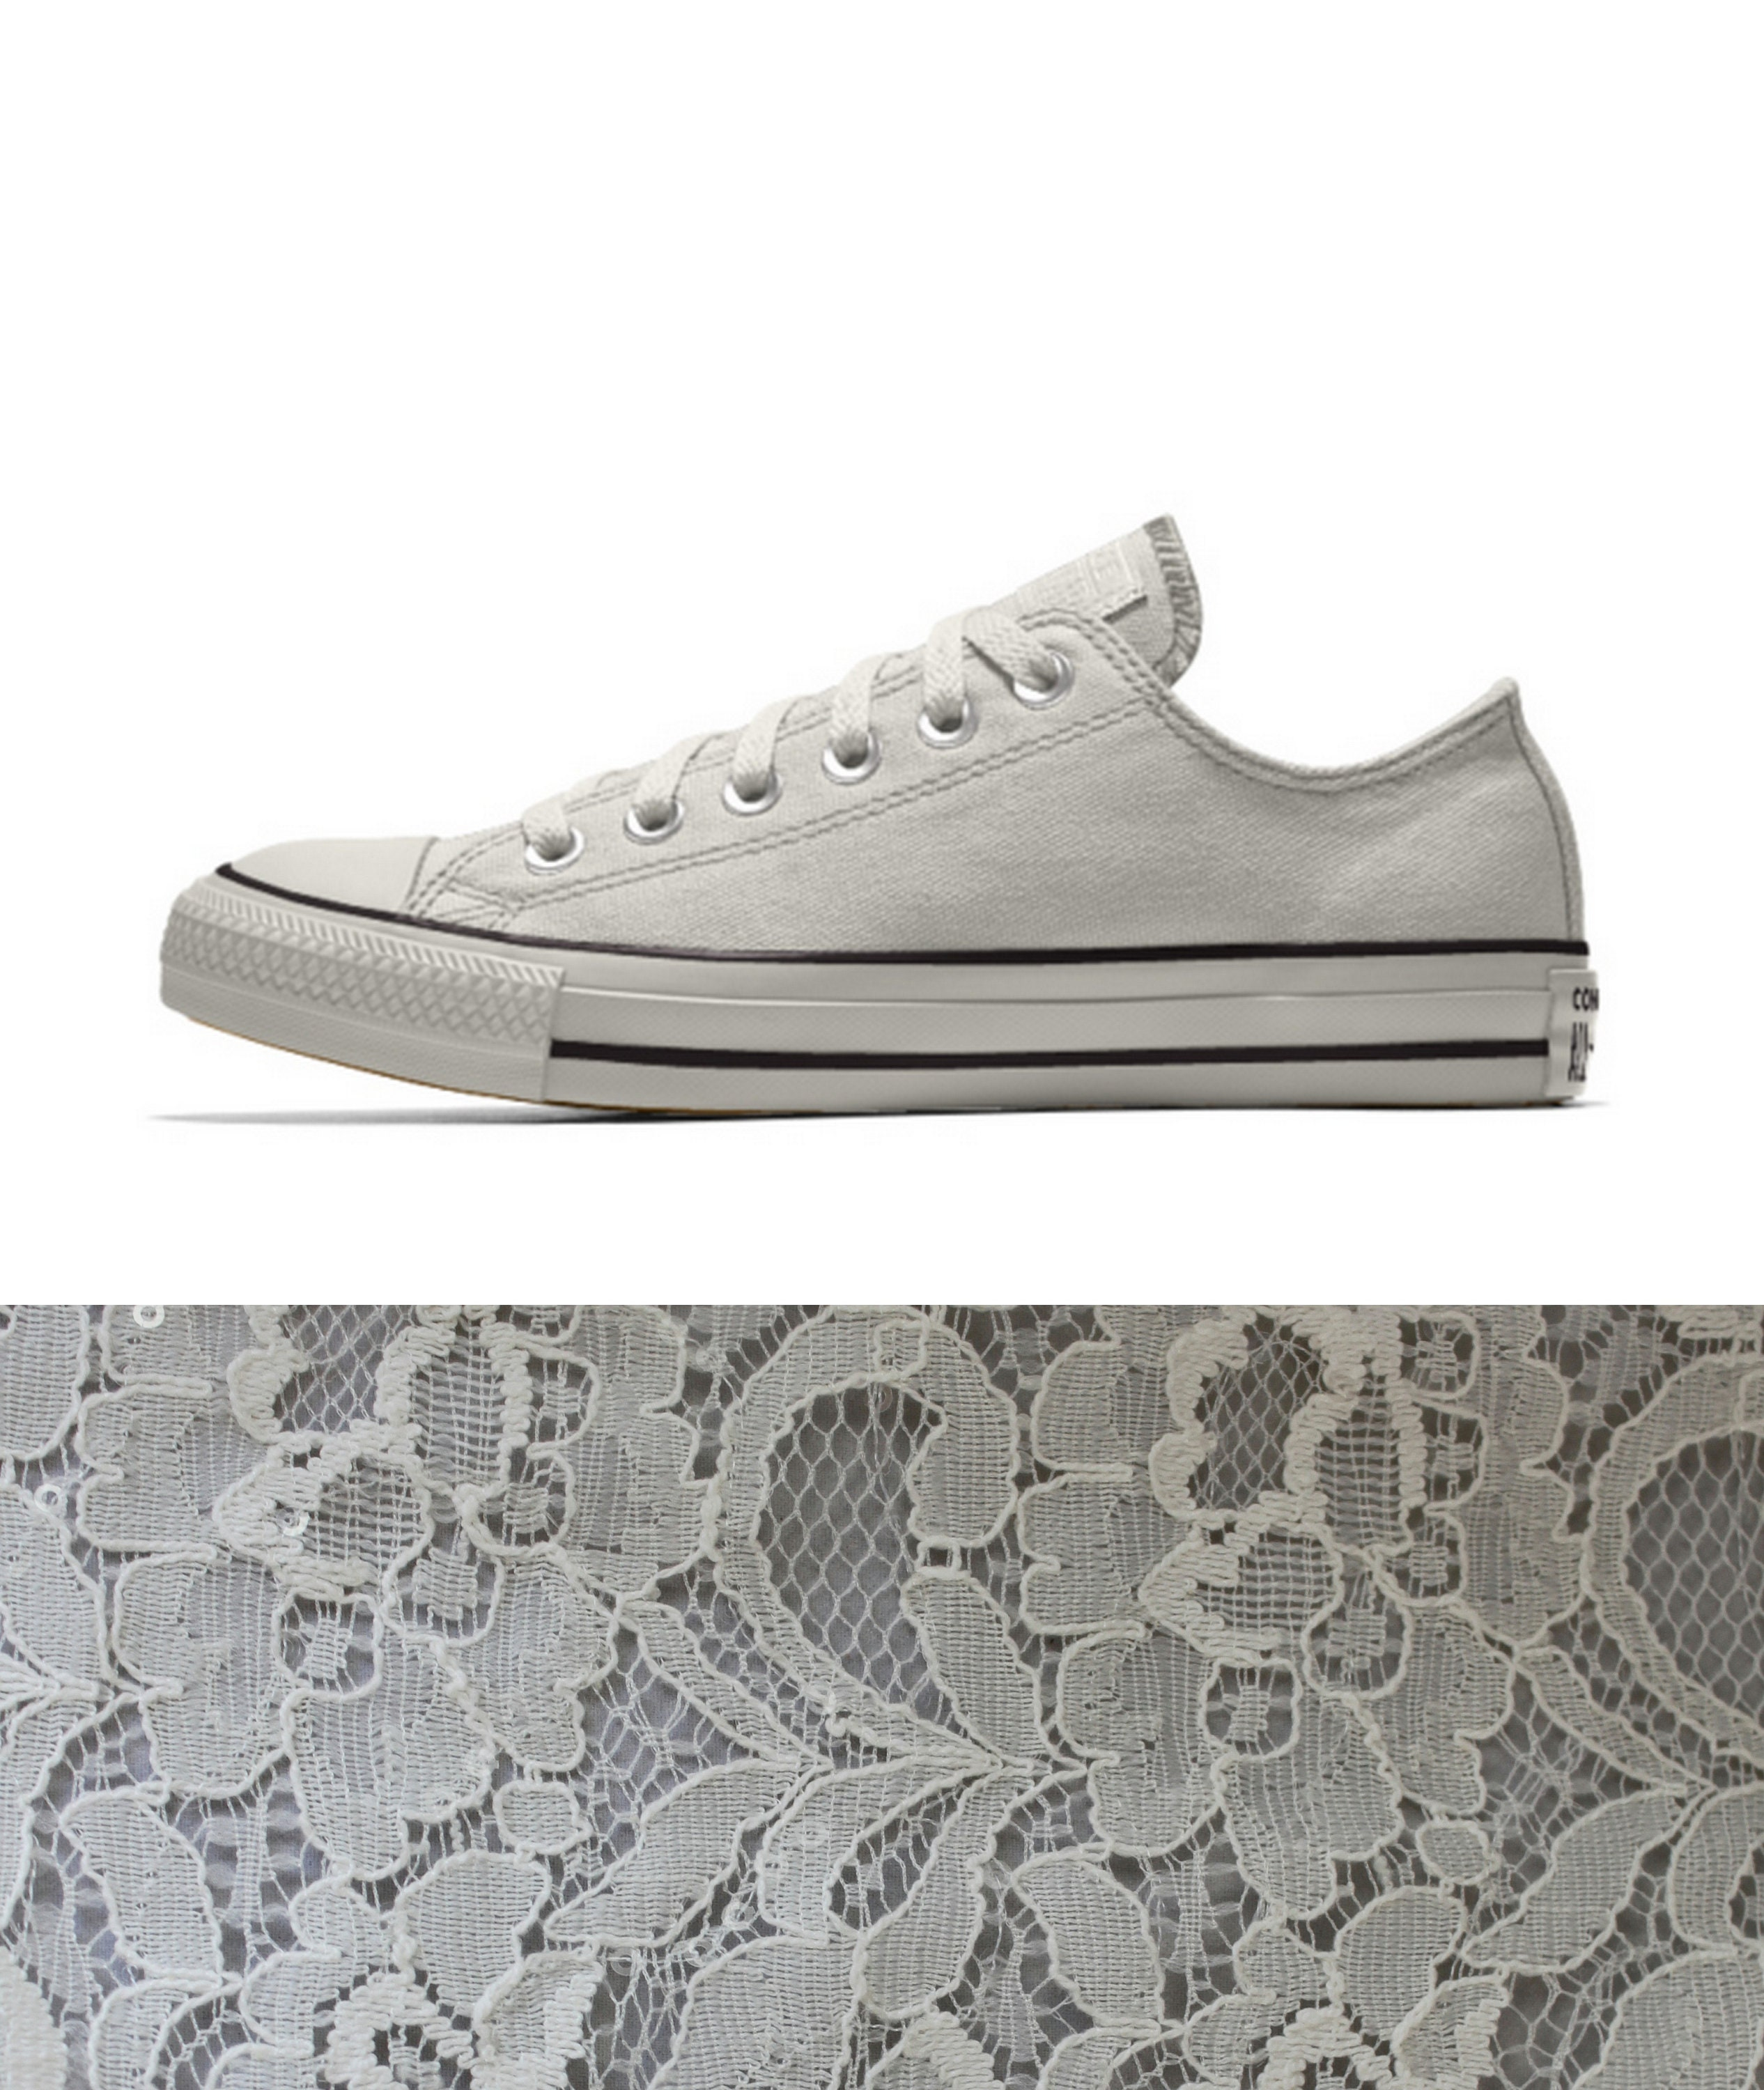 40a984377a8b86 Custom Egret and Ivory Lace Bridal Converses for Kristen -- Wedding ...